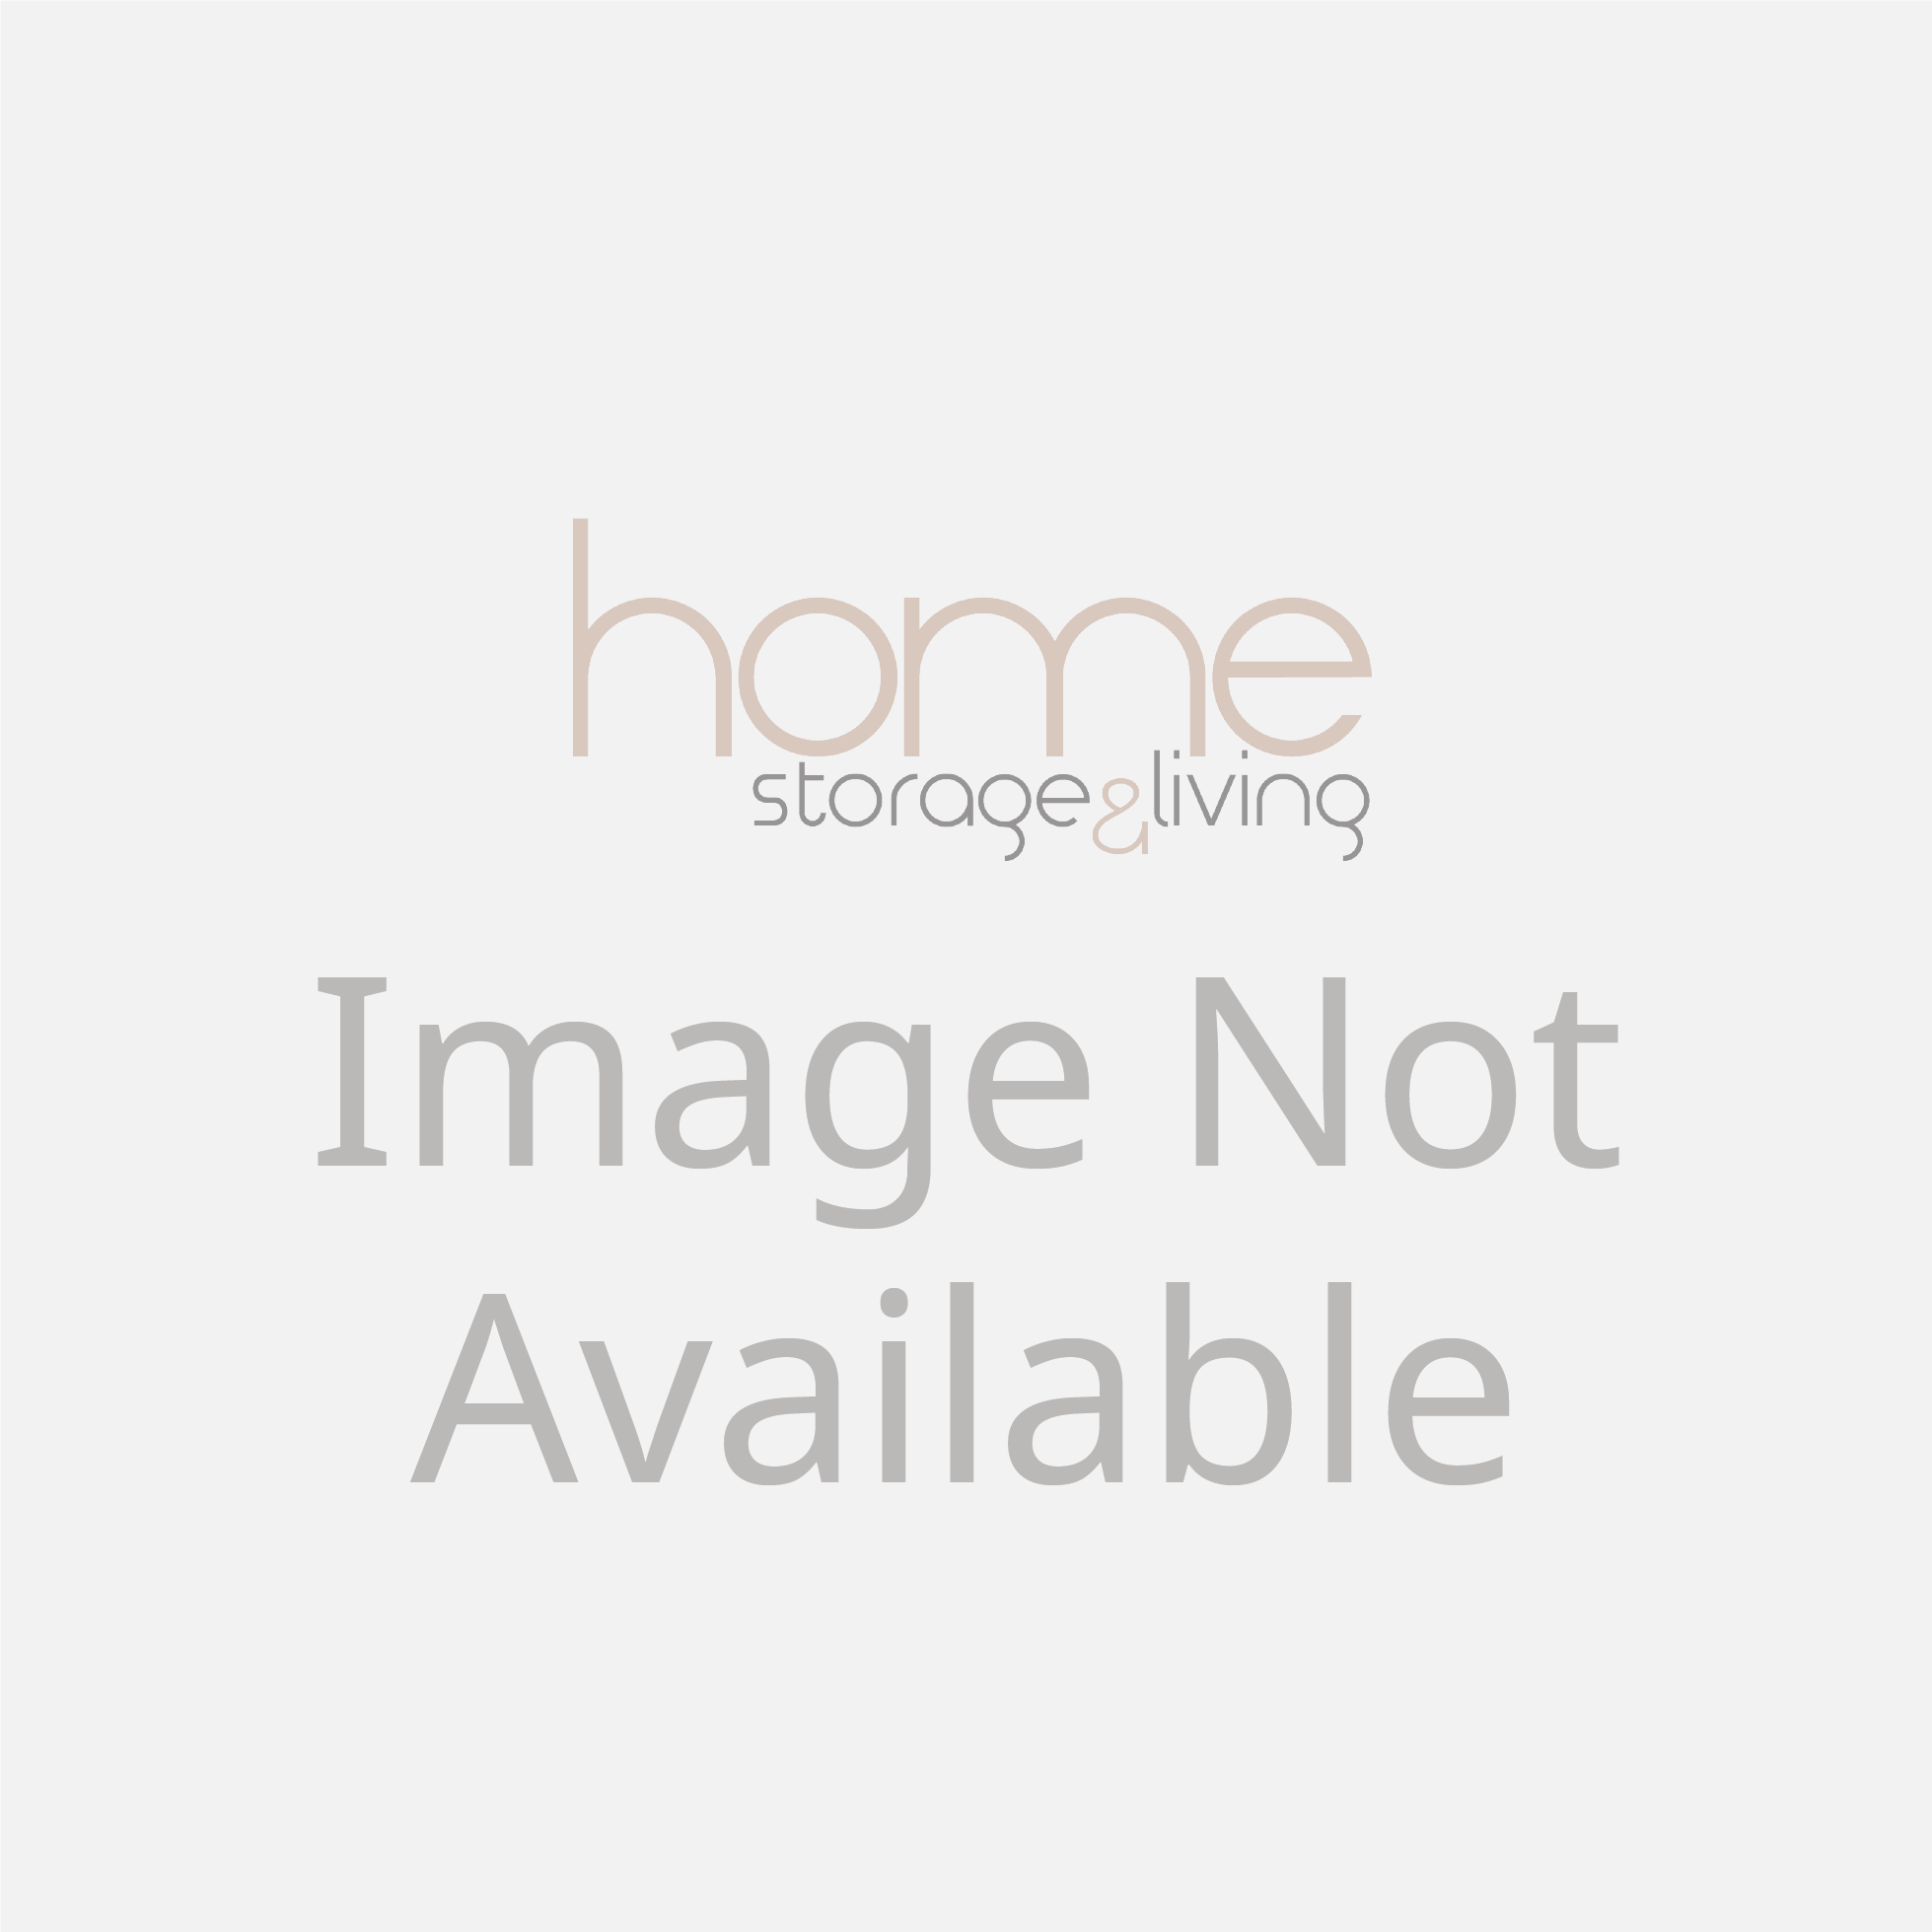 Wooden Shelving Unit Fold Up 4 Tier | Furniture | Home Storage & Living